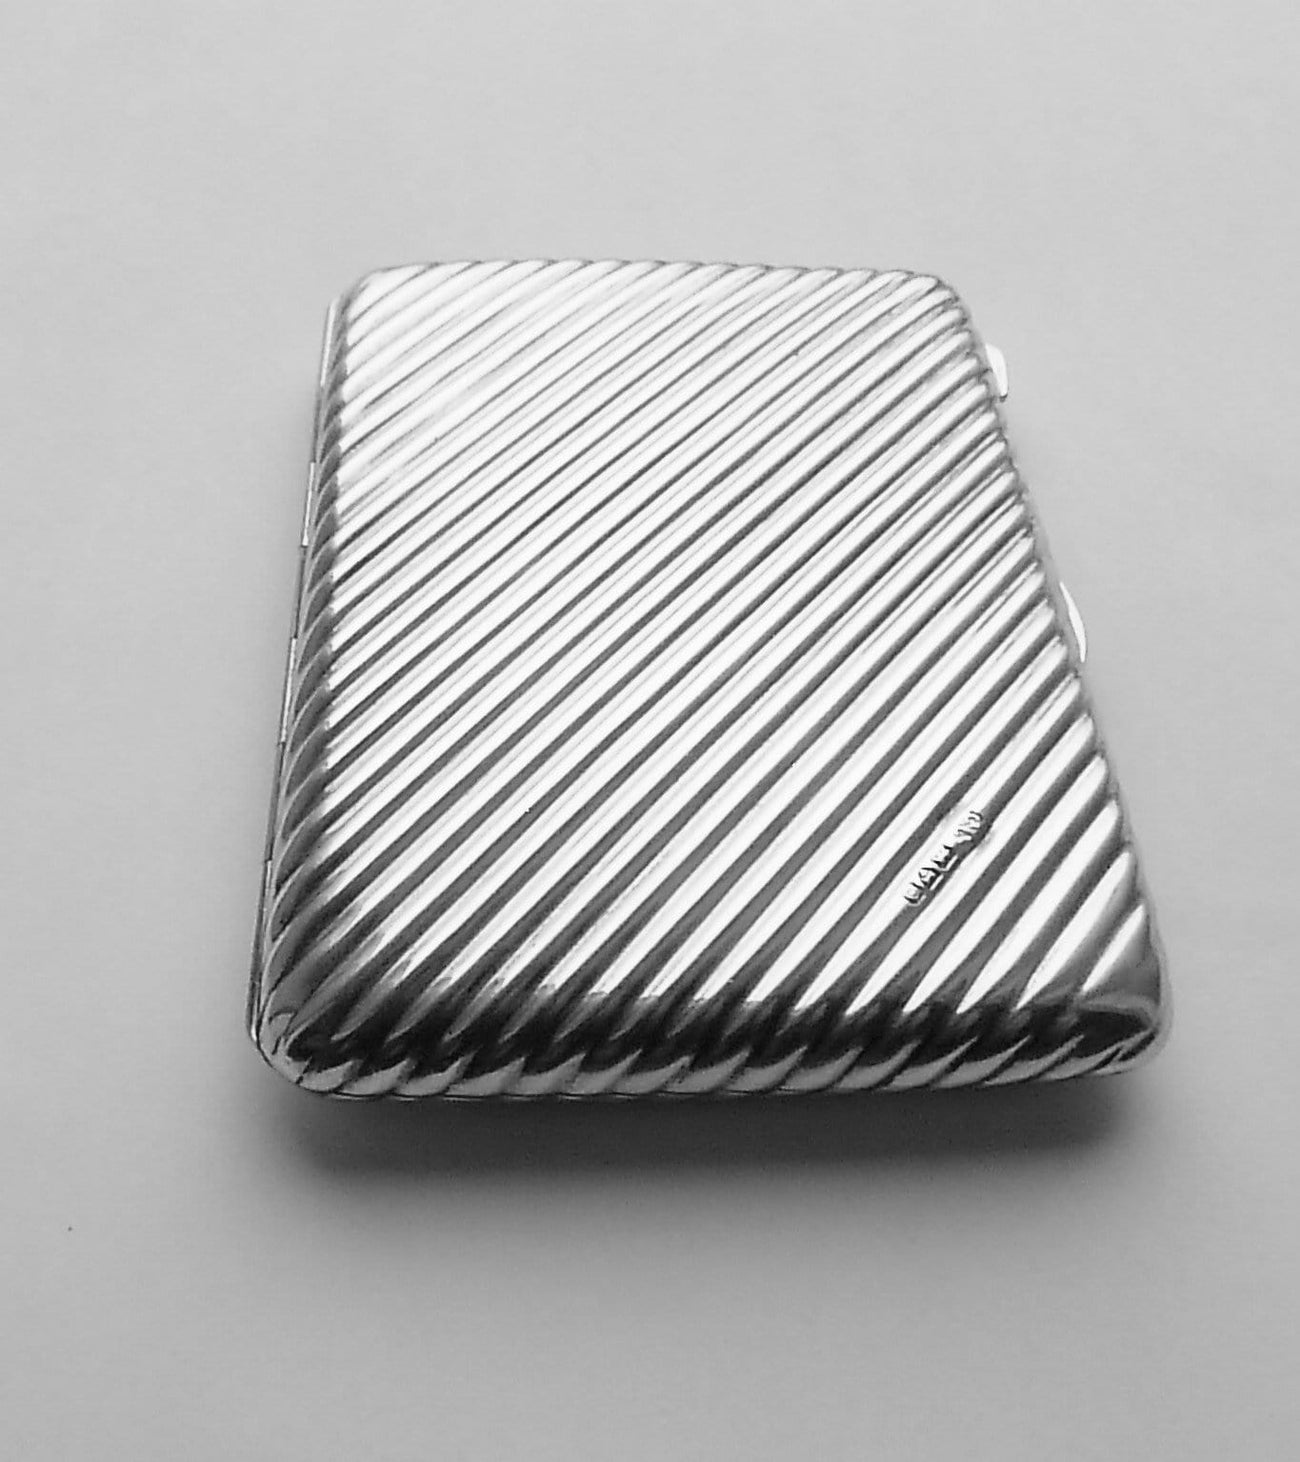 Edwardian silver cigarette case large sterling silver cigarette / card cases Colen Hewer Cheshire